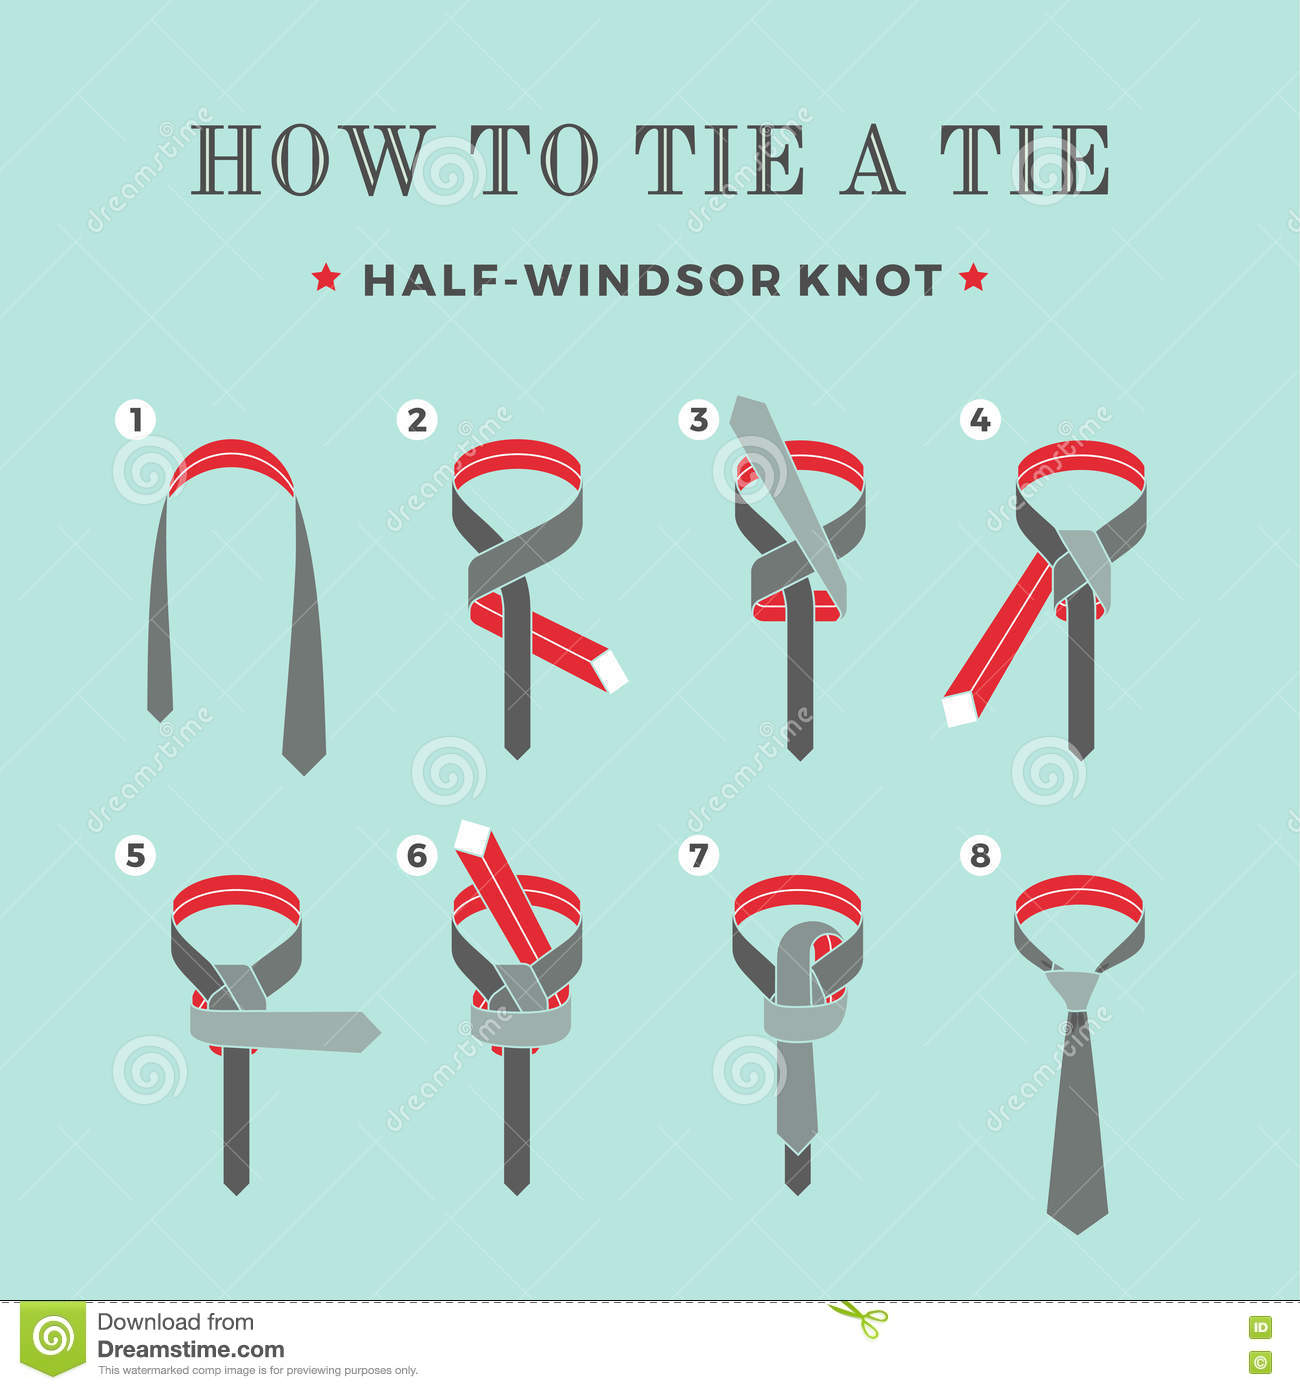 Instructions On How To Tie A Tie On The Turquoise Background Of